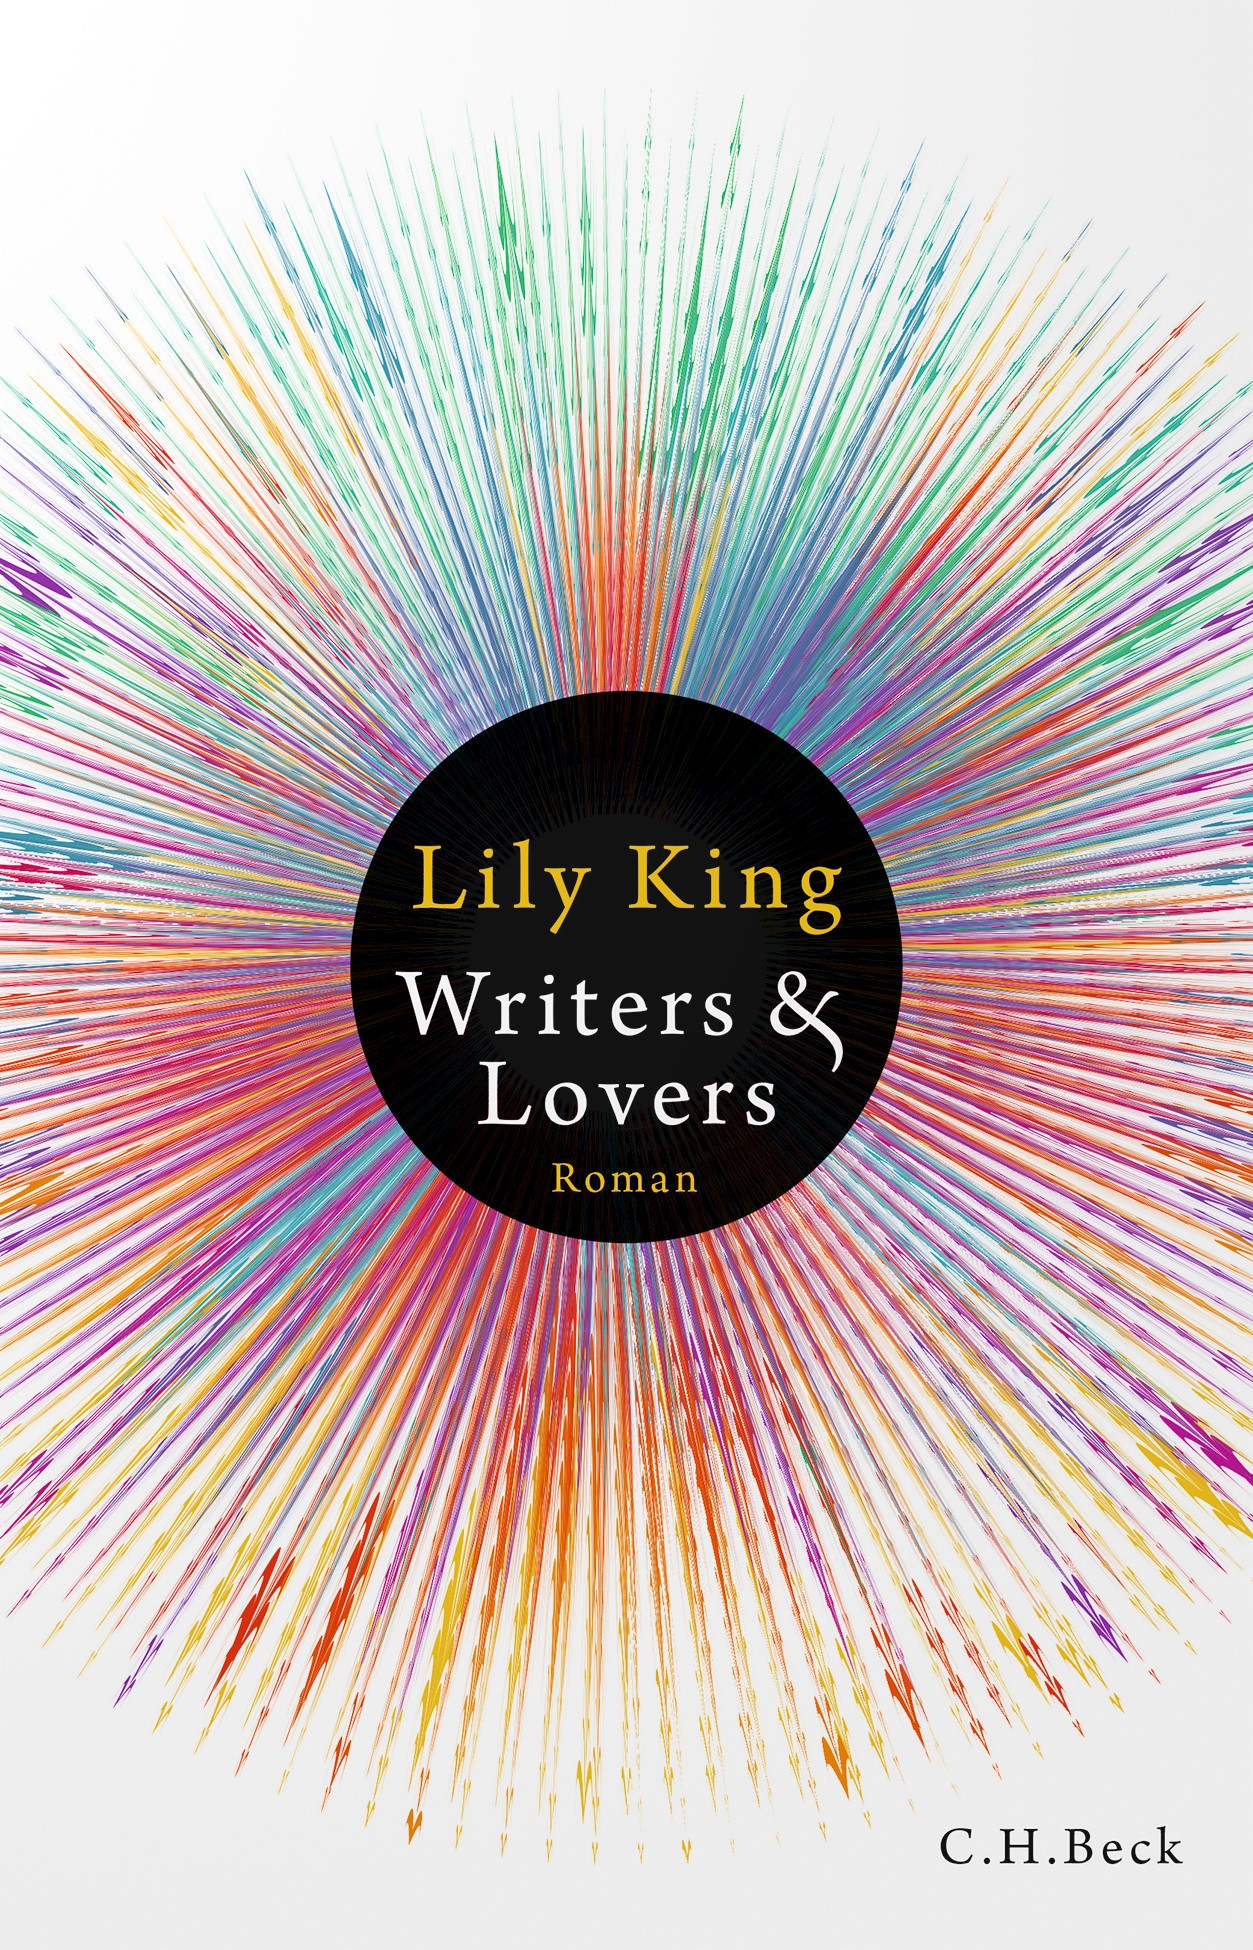 Lily King – Writers & Lovers